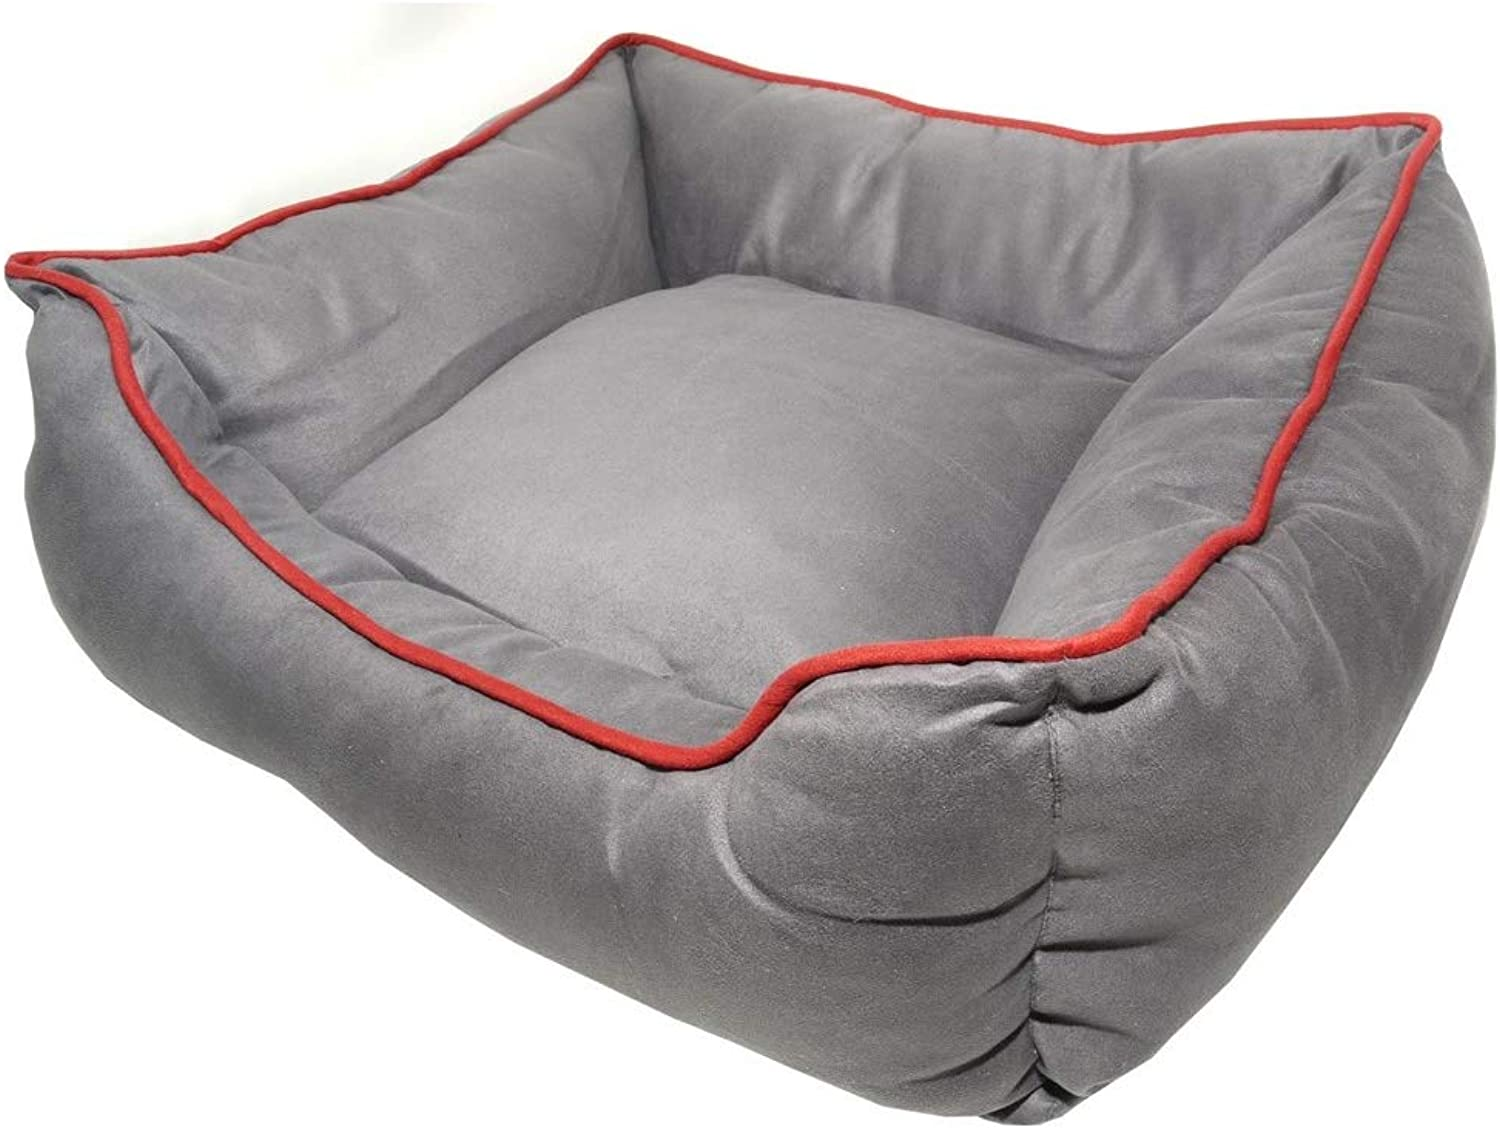 Nano Pet Products Dog Gone Nanosuede Lounger Dog Bed (26 x 24in) (Graphite)